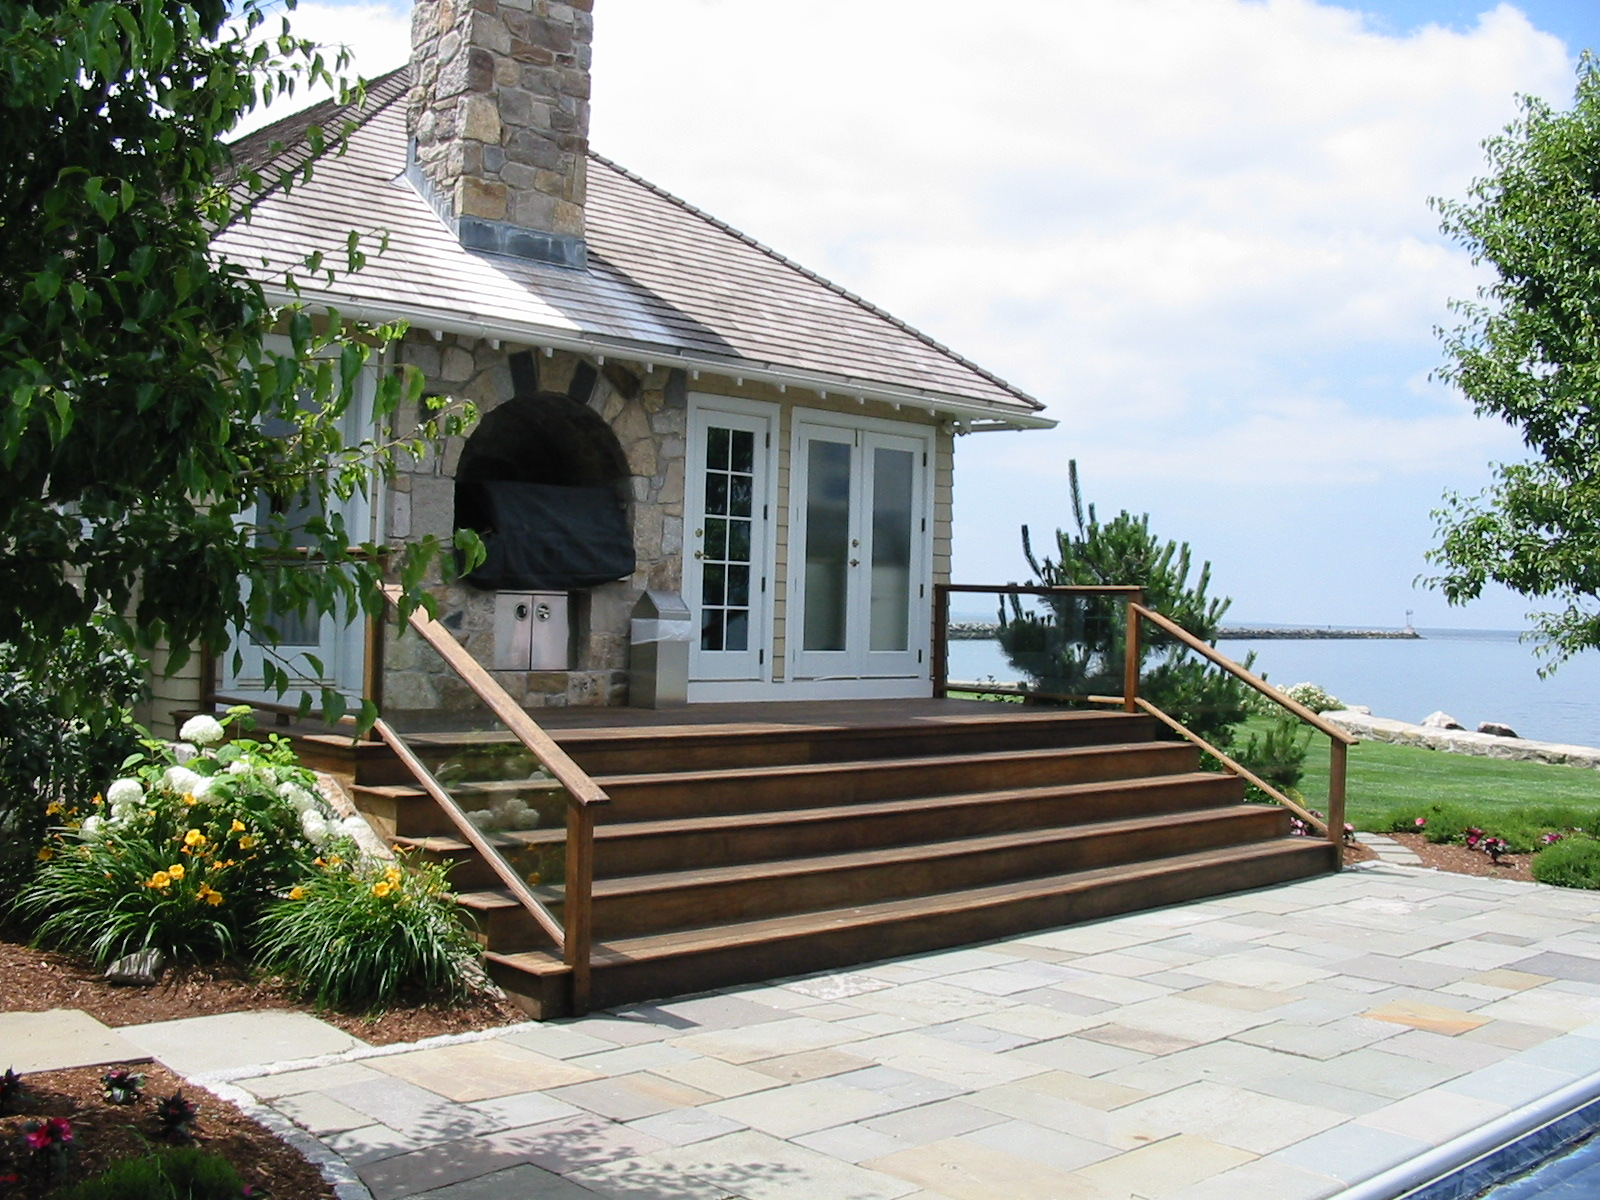 Grand Poolhouse steps